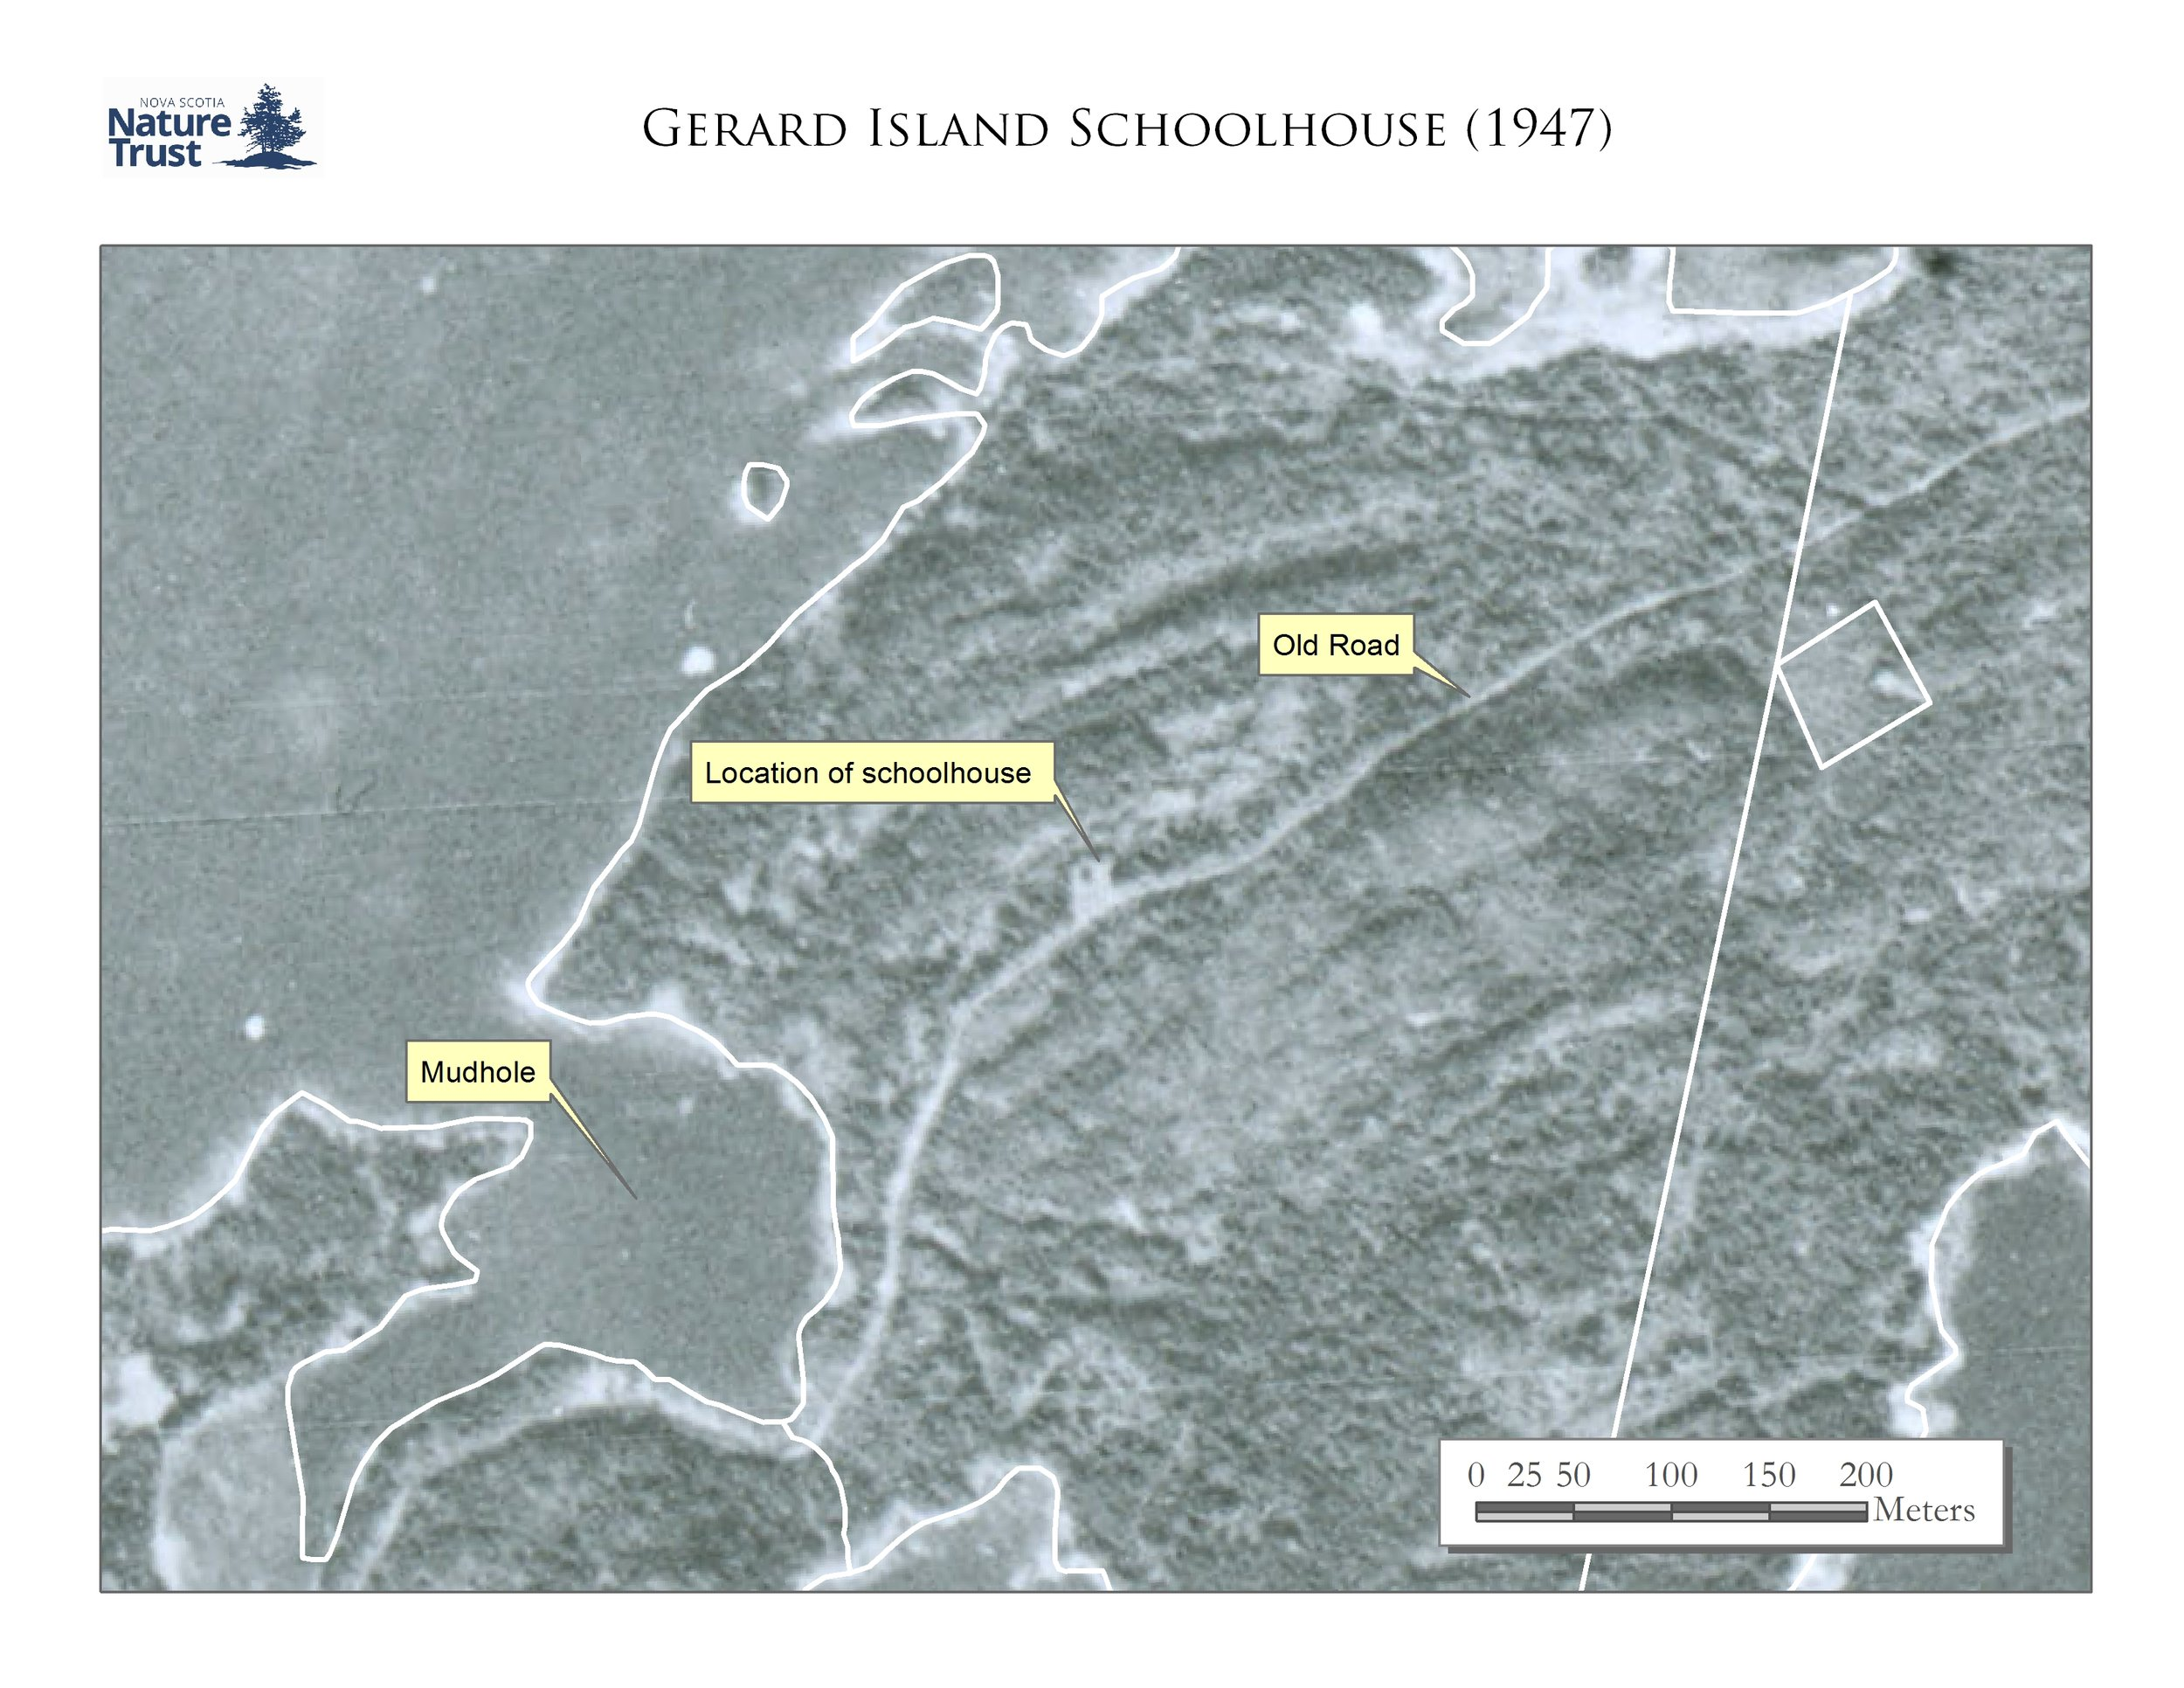 Location of Schoolhouse on Gerard Island from a 1947 aerial photo.